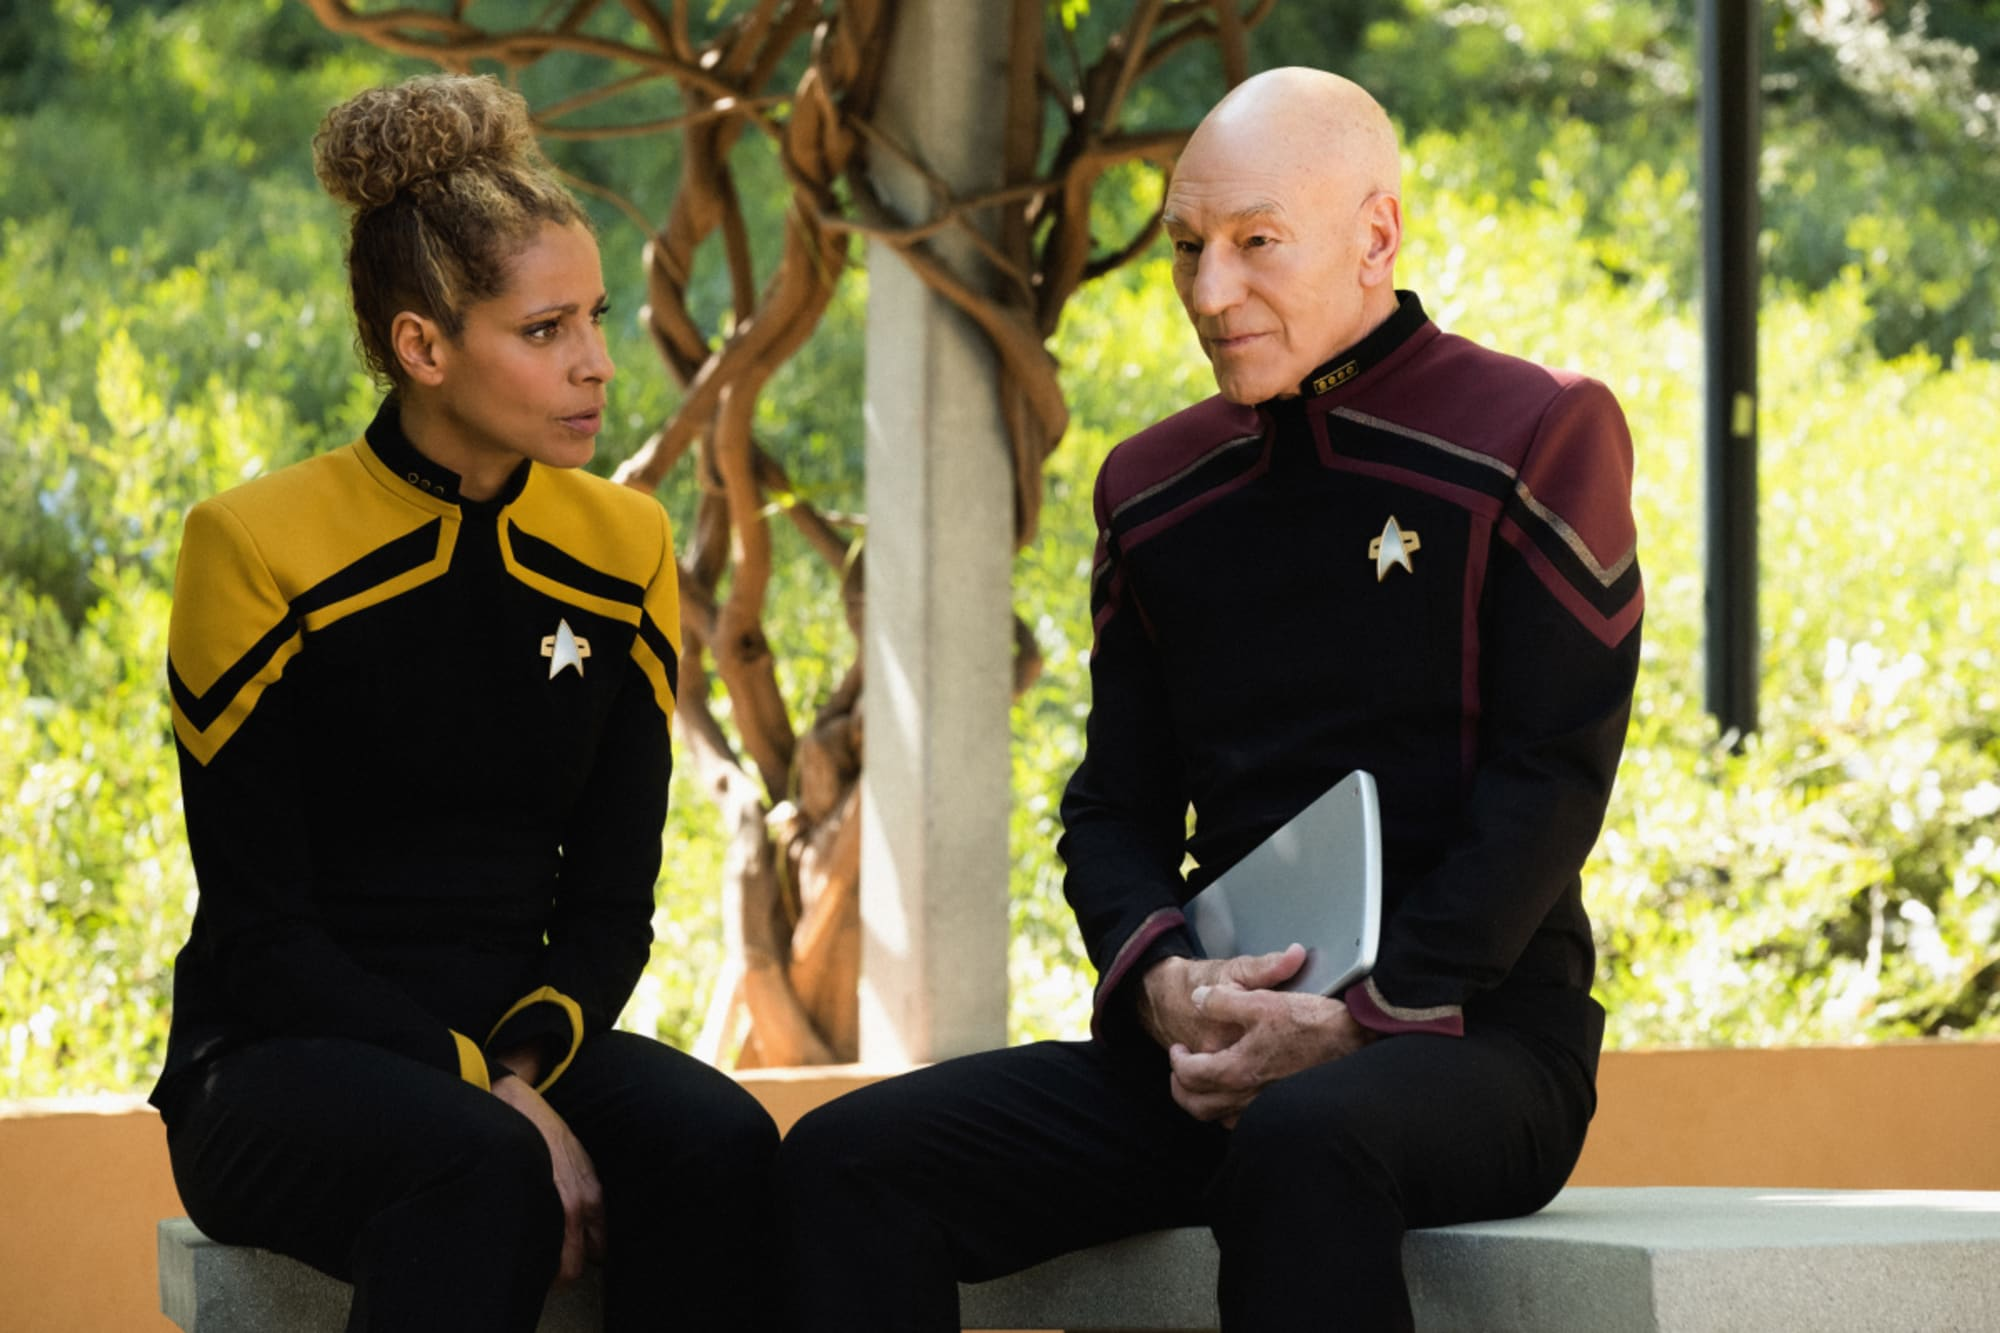 Star Trek: Picard on screen romance started at a ComicCon